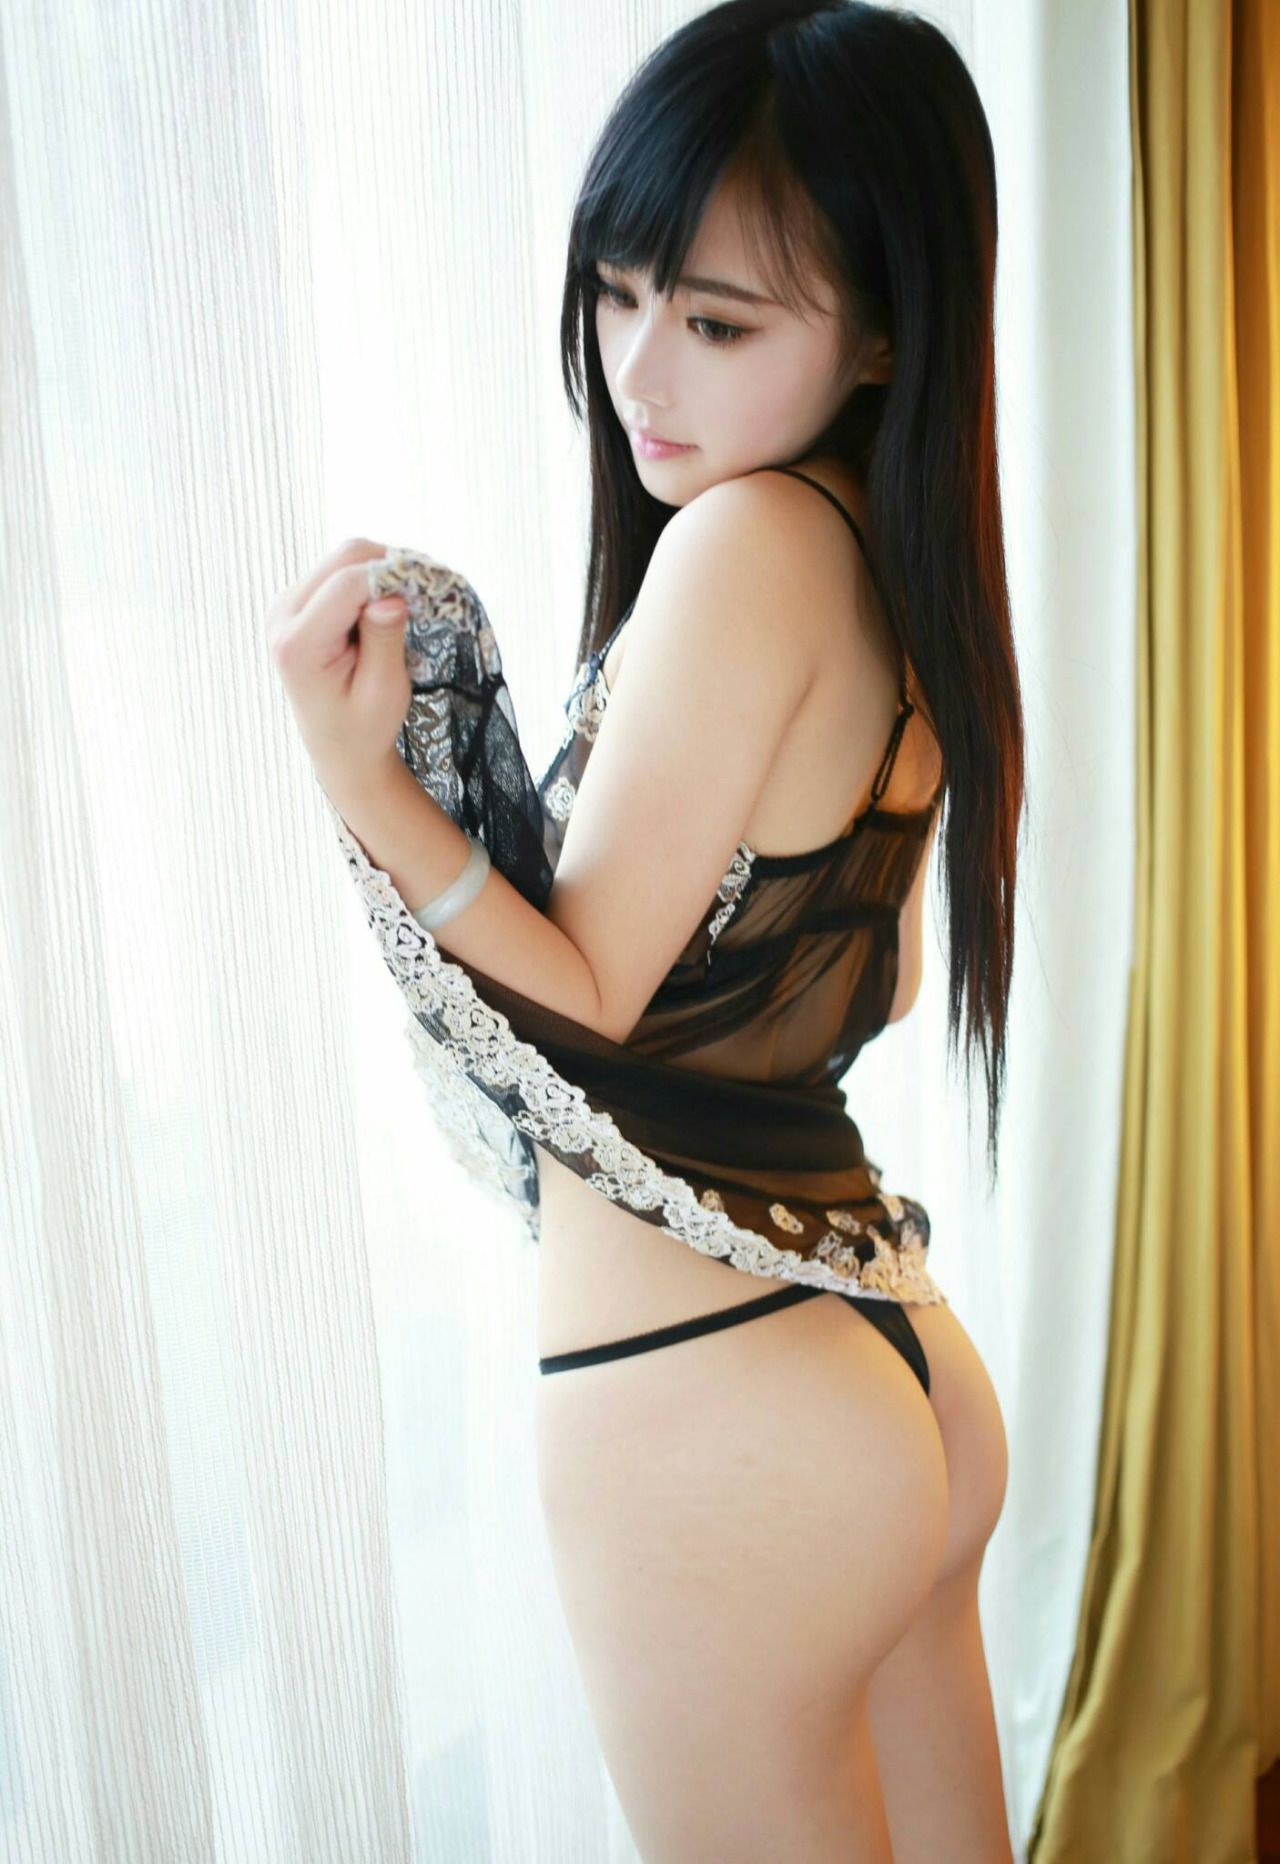 College girls somking nude immage